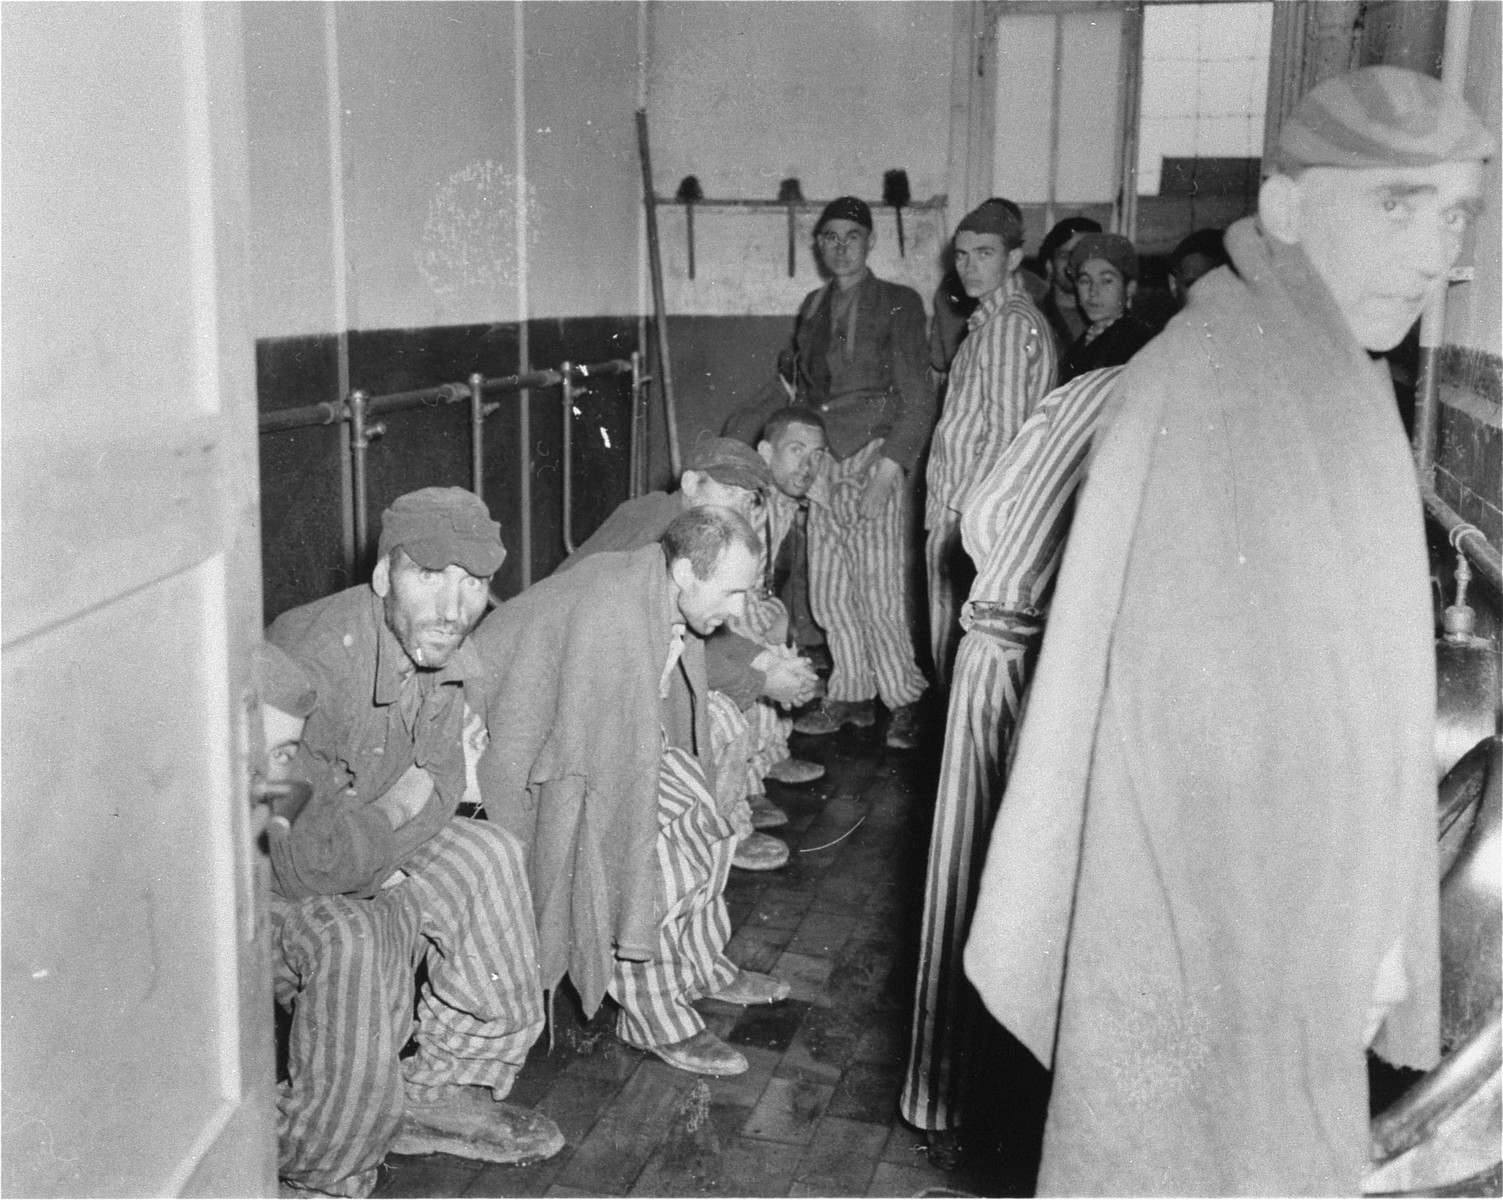 Survivors in the latrine barracks after liberation.